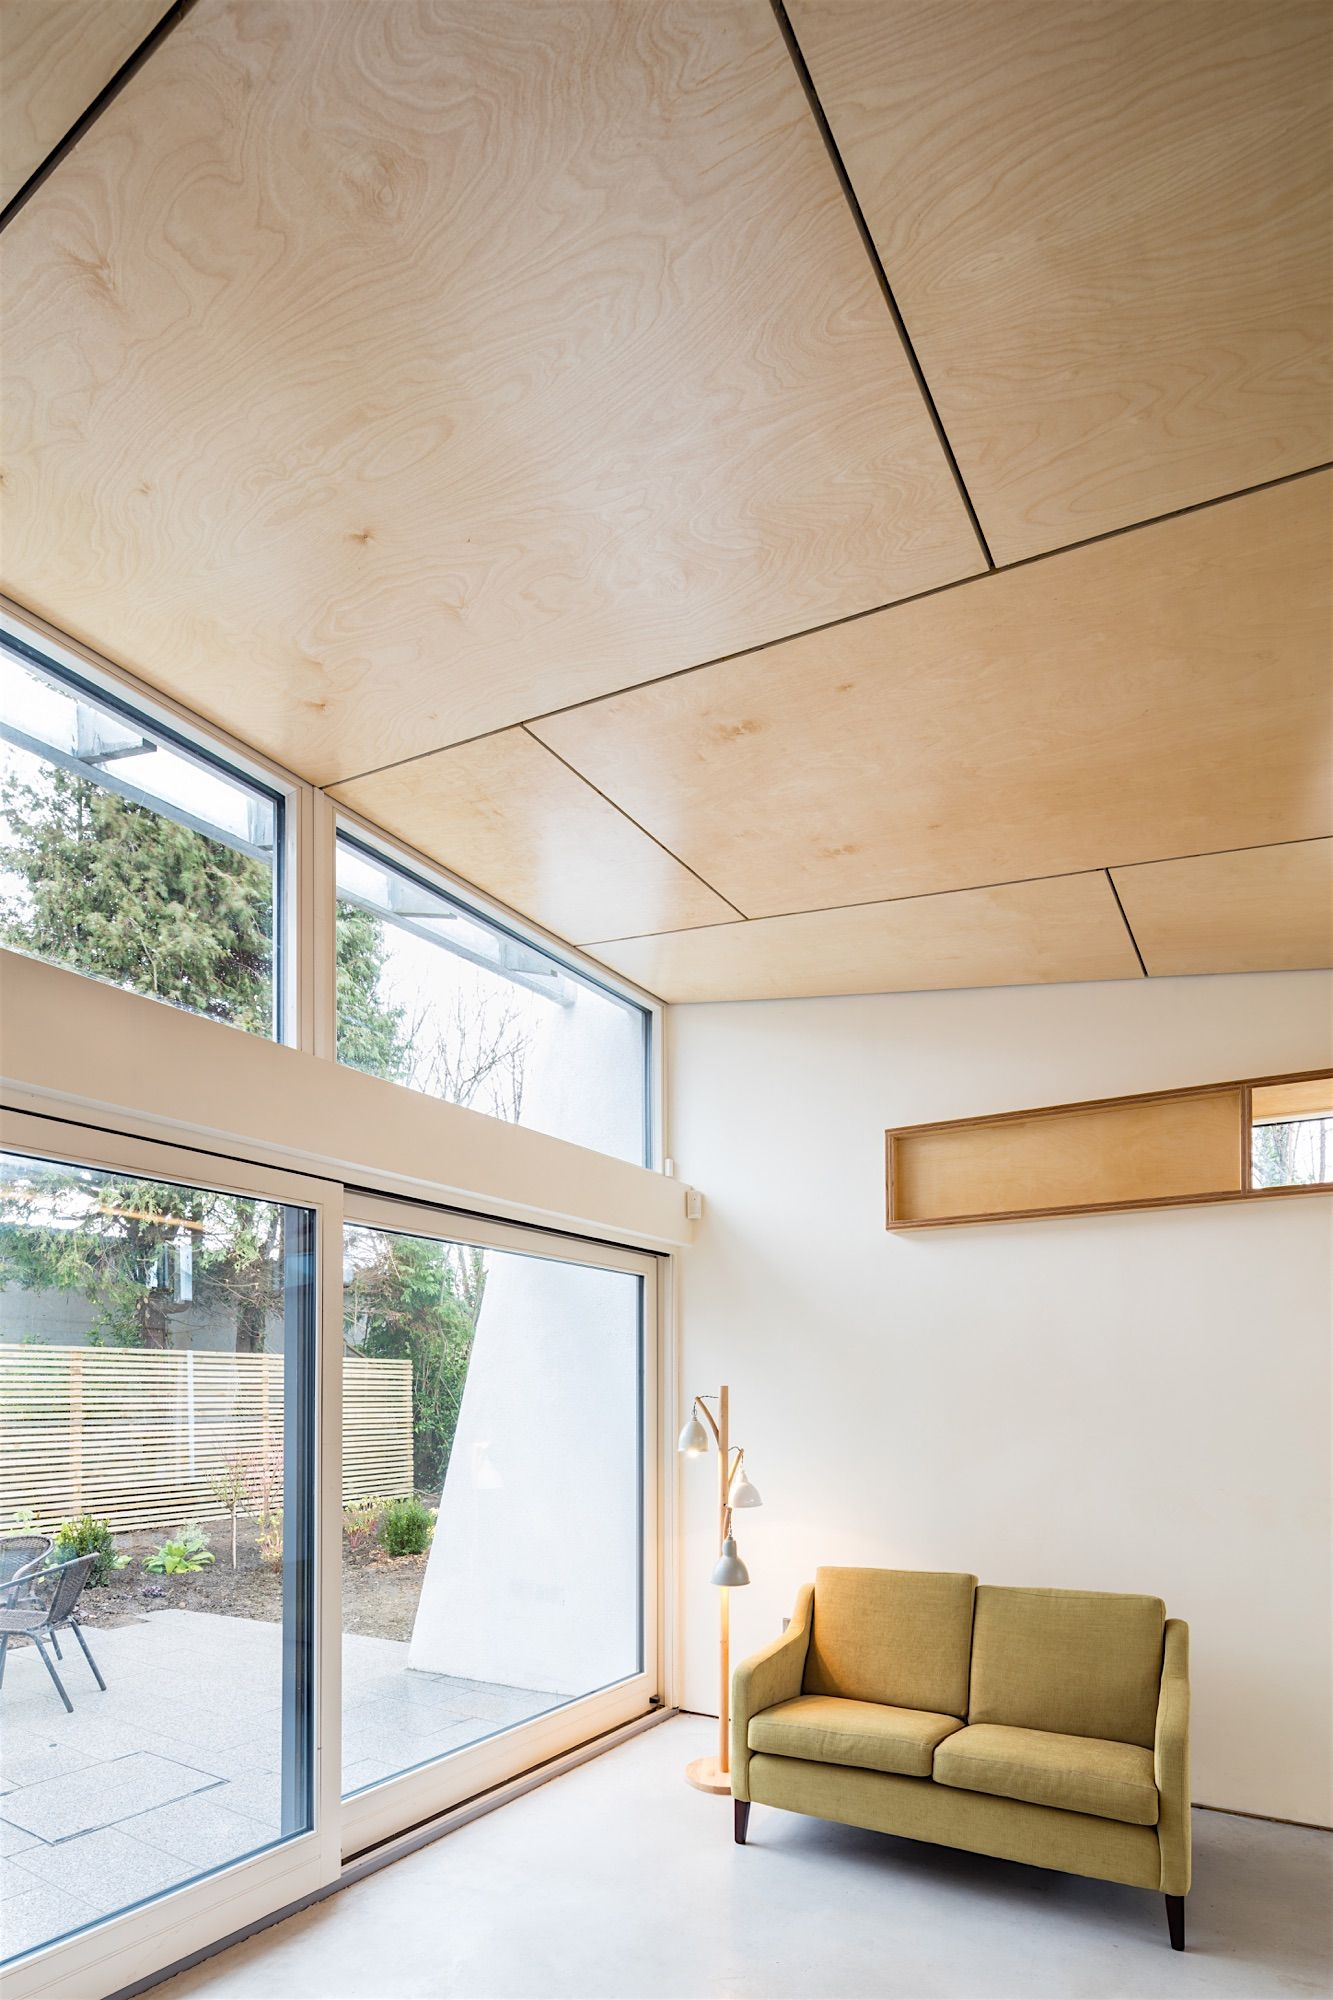 Bespoke Joinery  Birch Plywood Ceiling